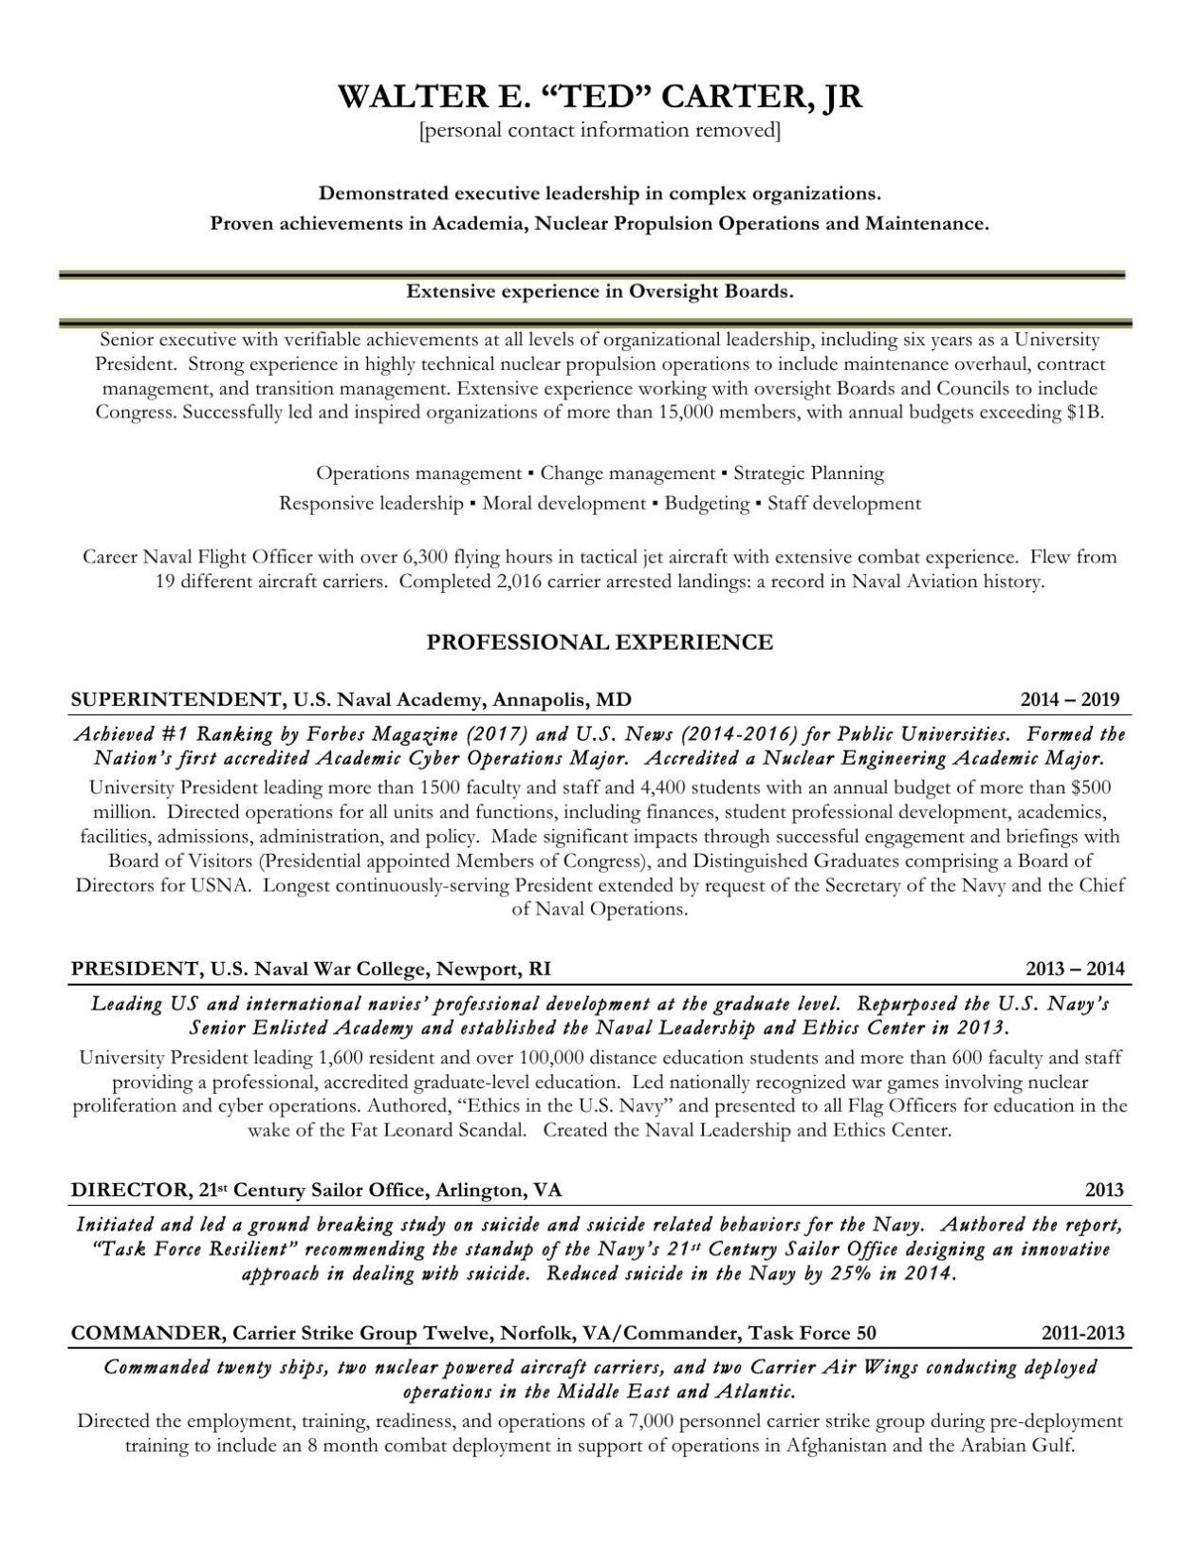 PDF: Review Ted Carter's resume